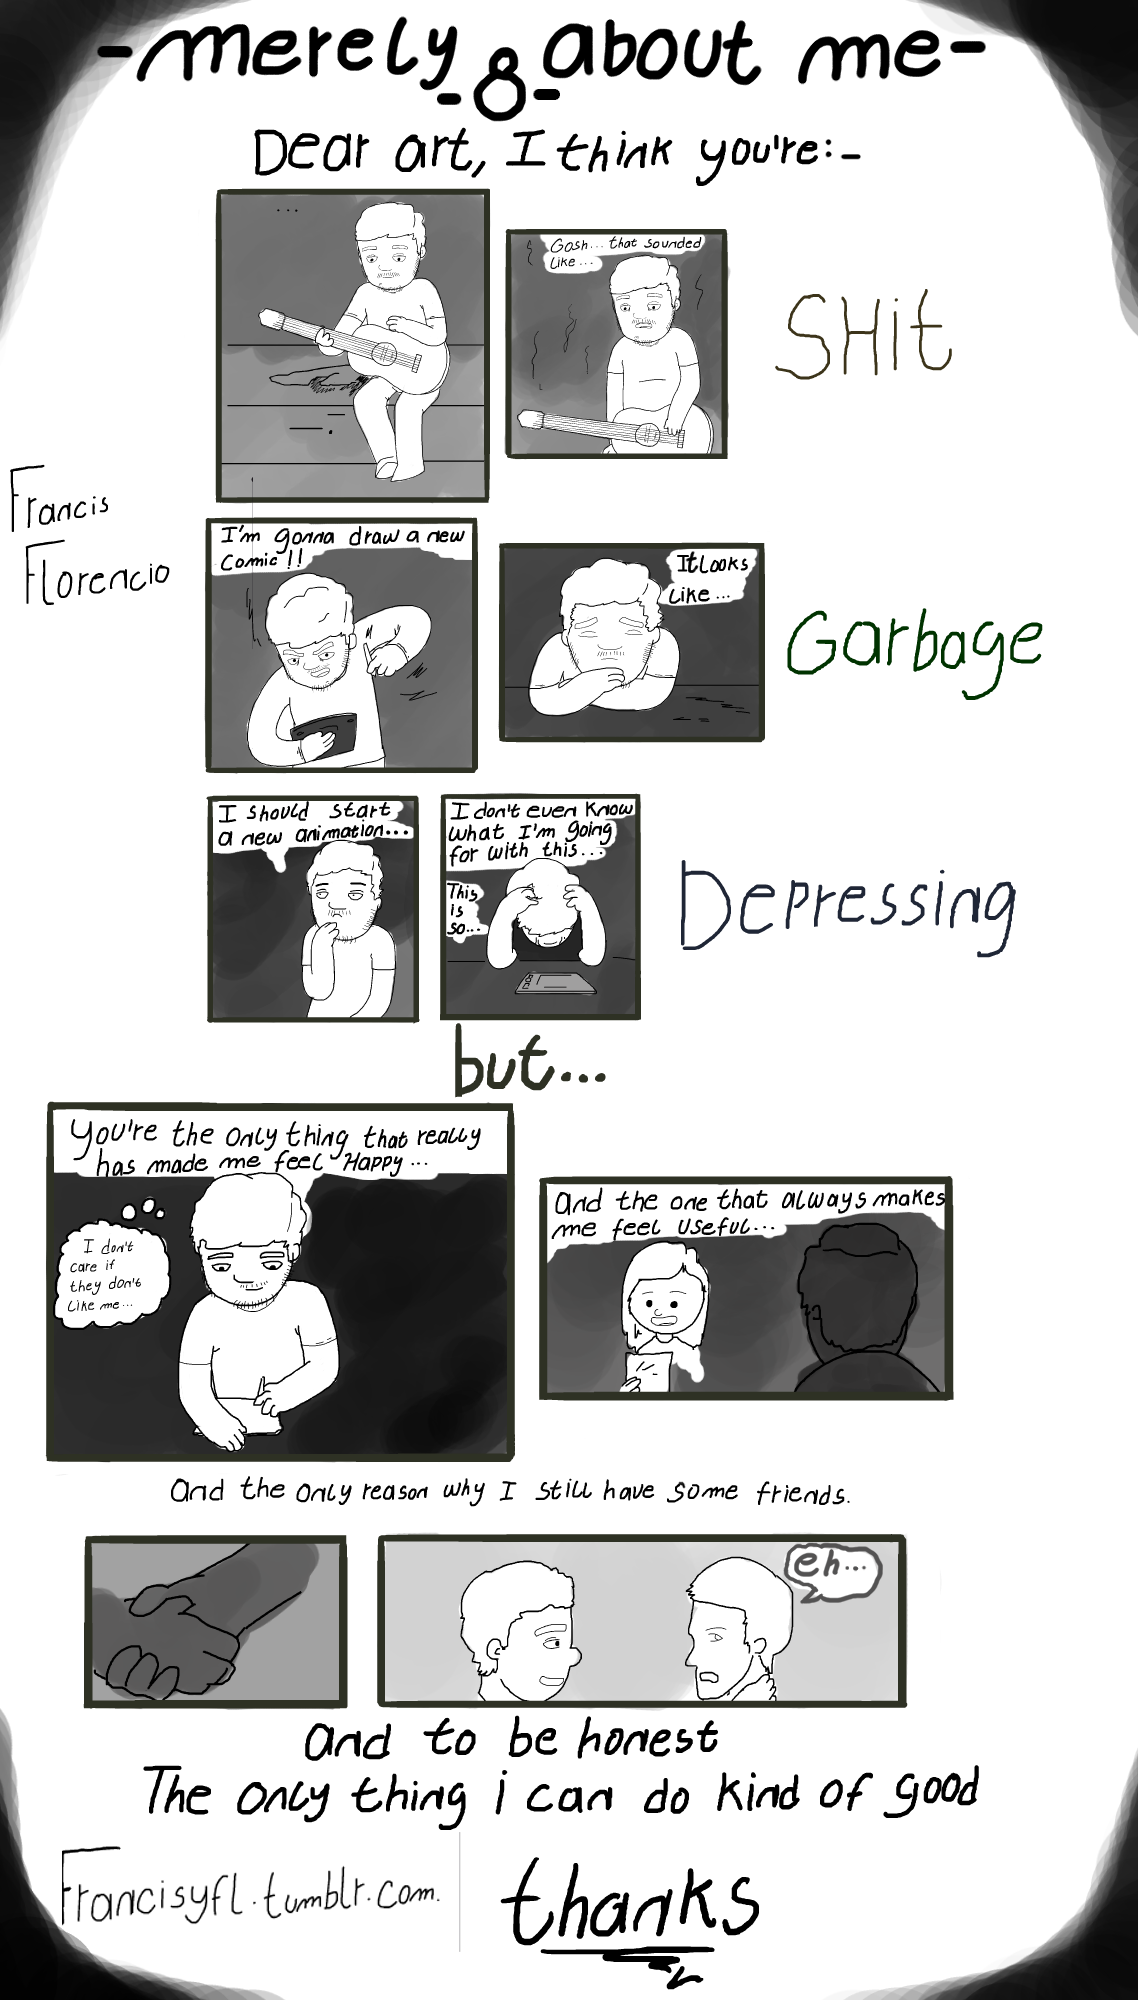 [Comic] Merely about me - 8